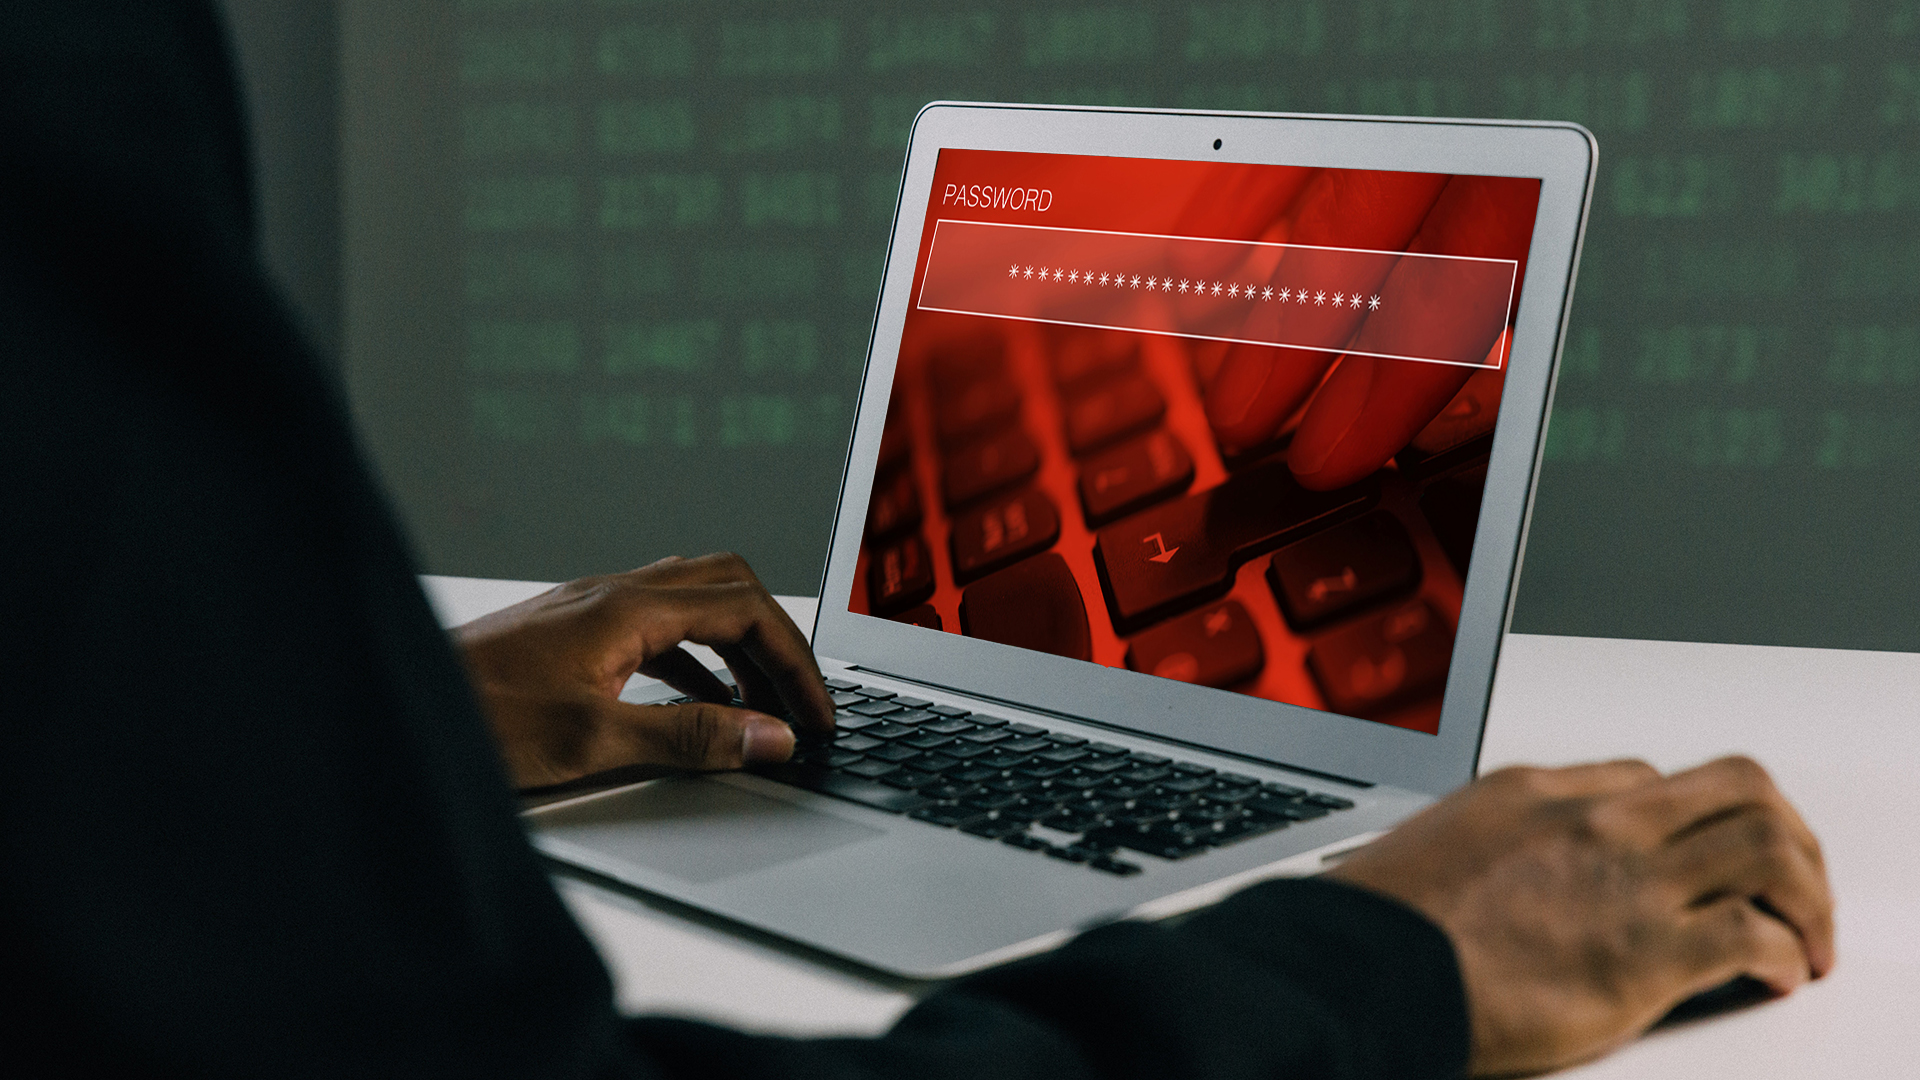 Time to strengthen patch management and password hygiene policies